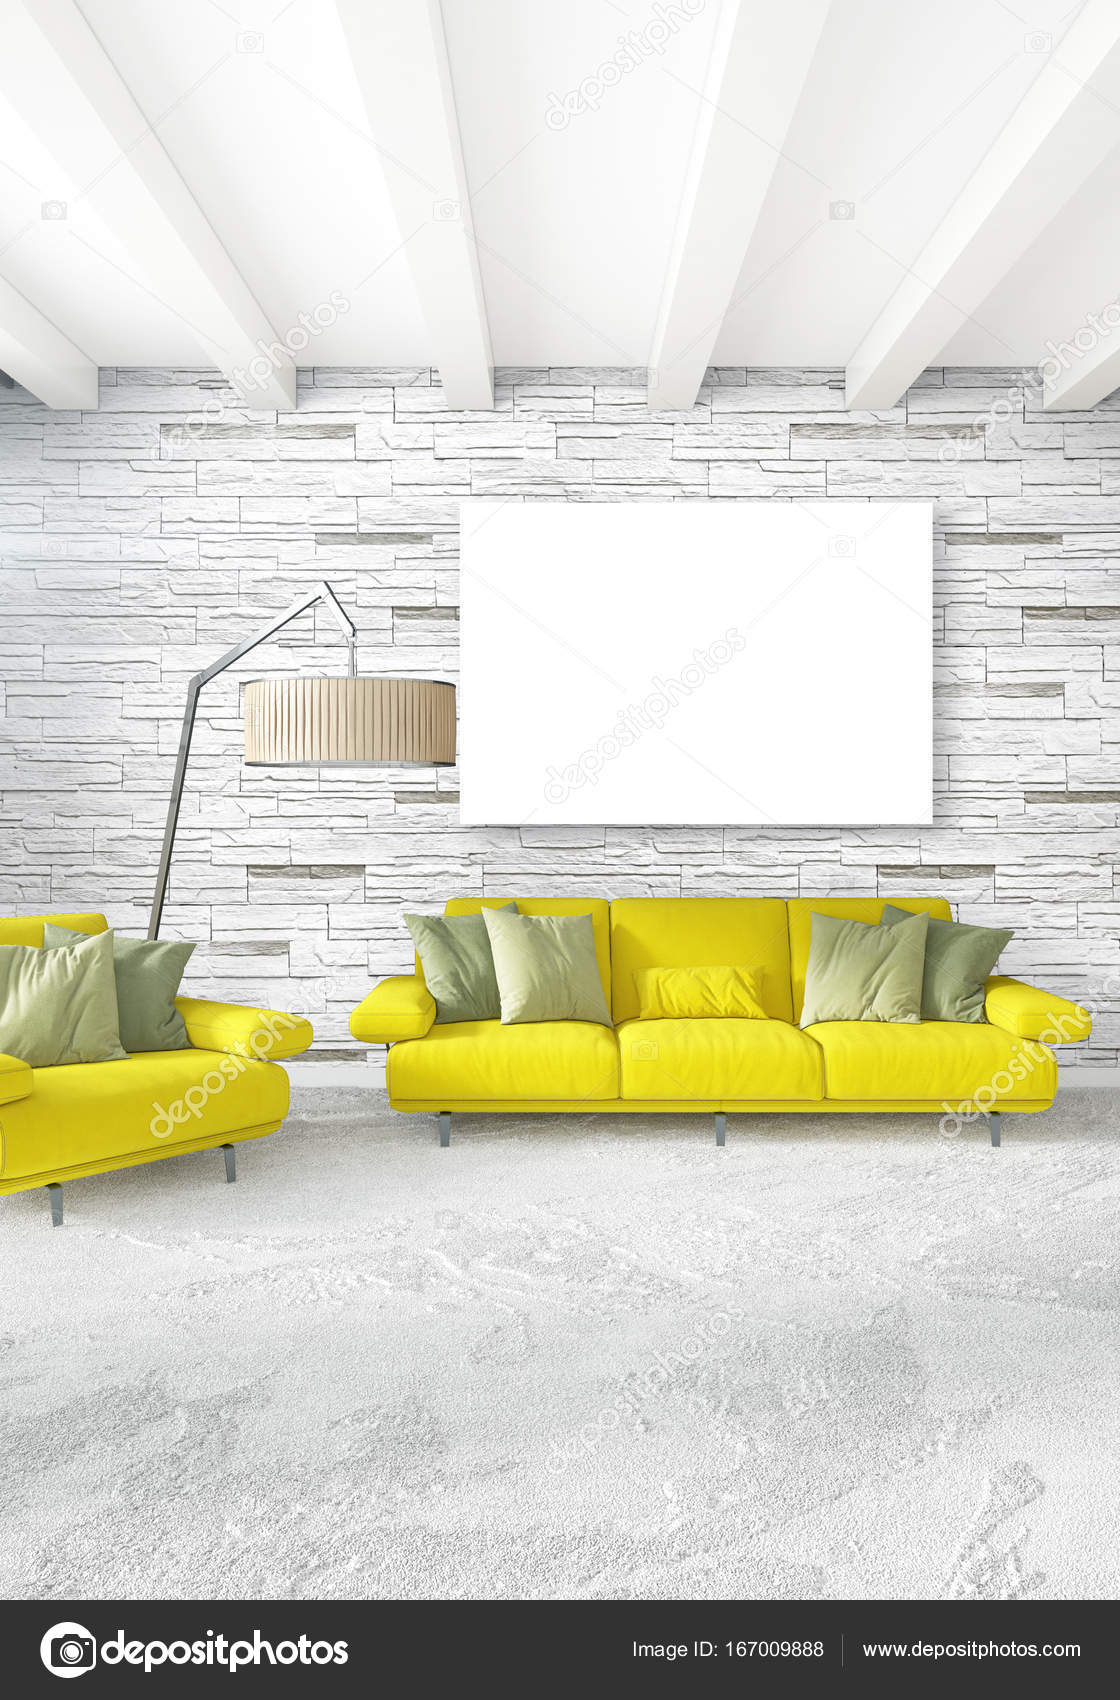 White bedroom minimal style interior design with wood wall and grey sofa 3d rendering